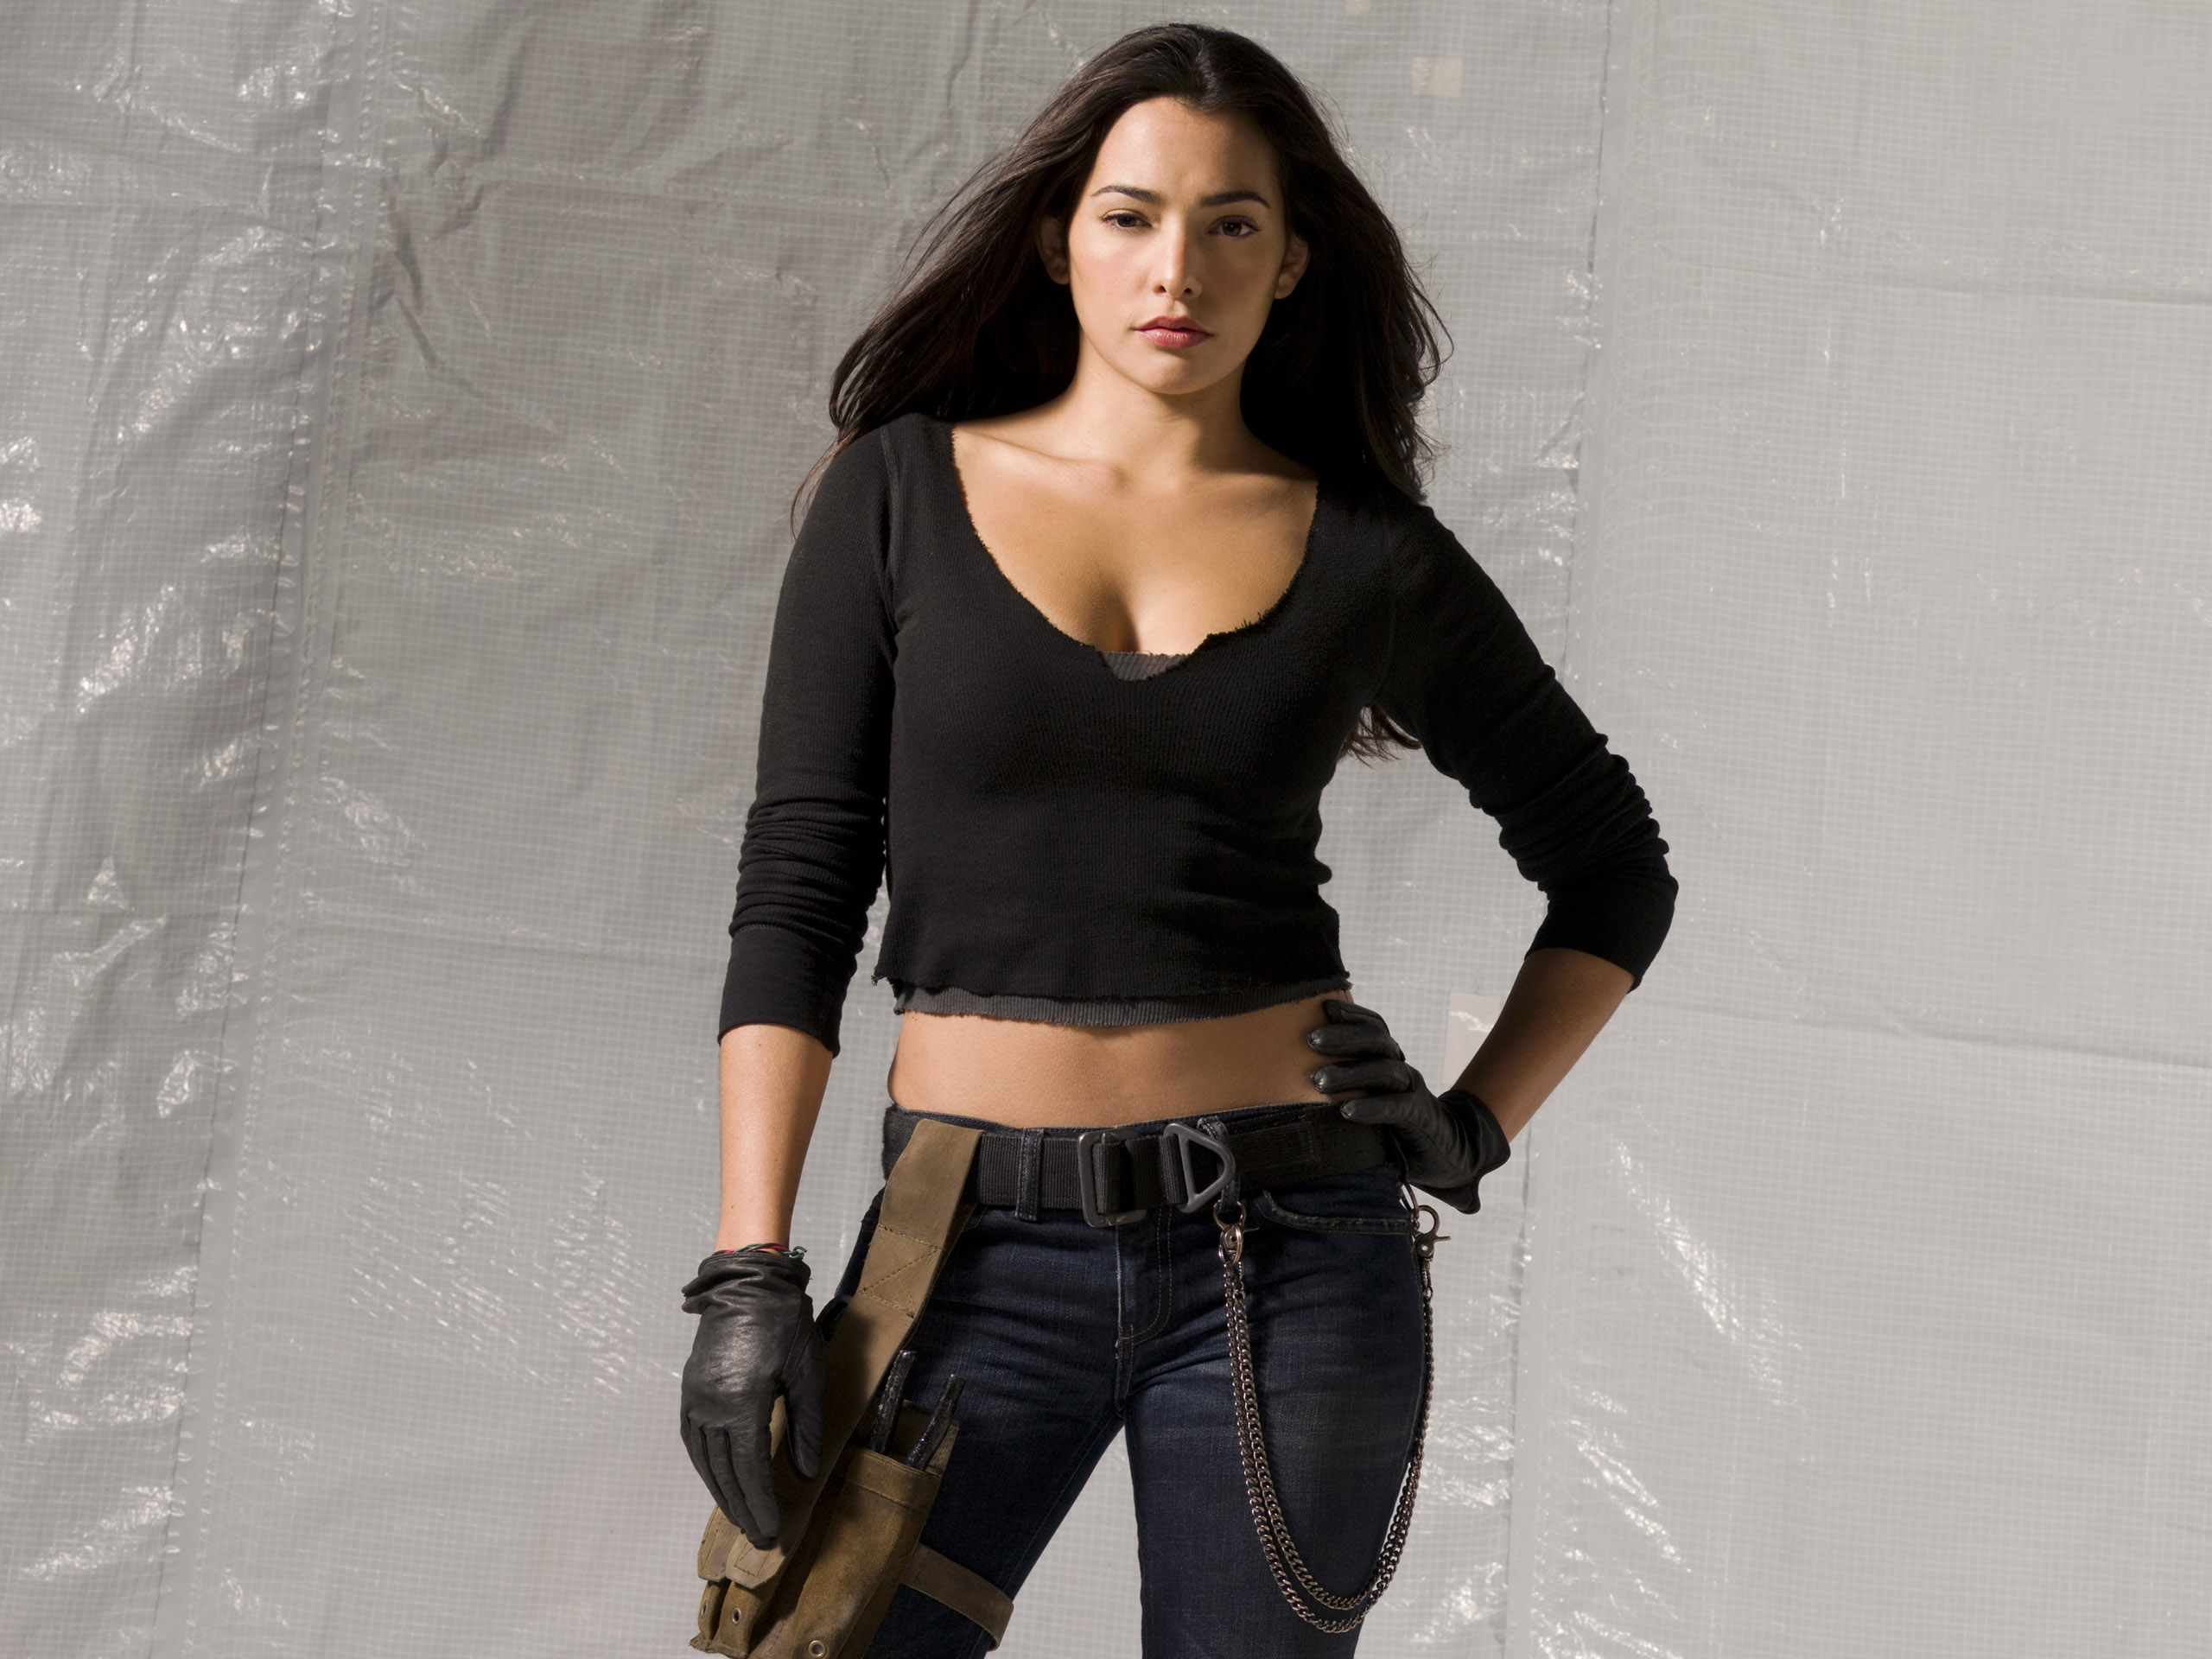 Natalie Martinez Images Natalie Martinez Hd Wallpaper And Background Photos